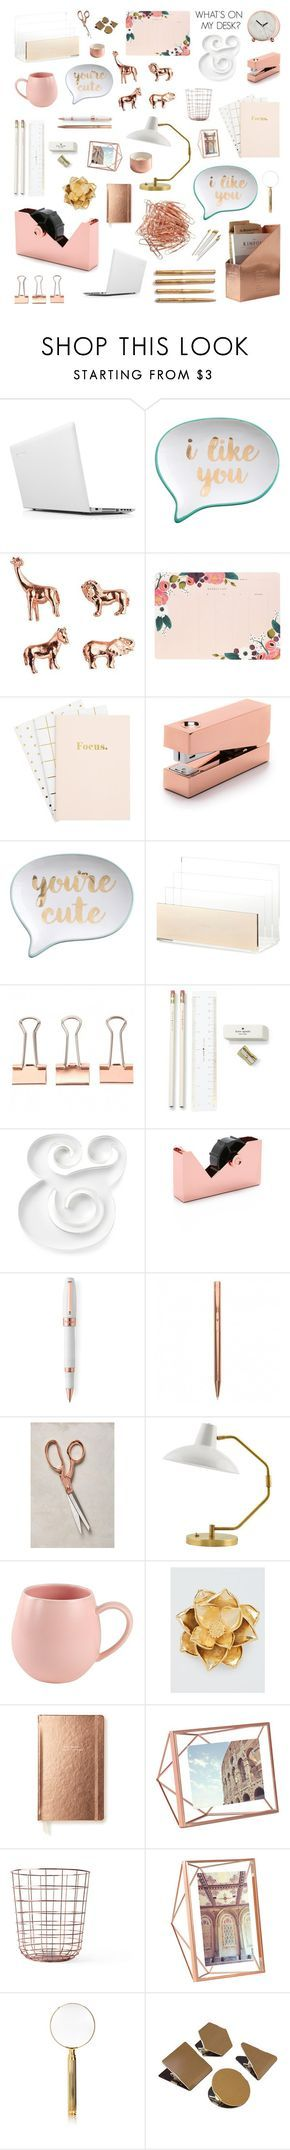 """copper rose desk"" by crystalliora ❤ liked on Polyvore featuring interior, interiors, interior design, home, home decor, interior decorating, Lenovo, Rosanna, Rifle Paper Co and Tom Dixon"